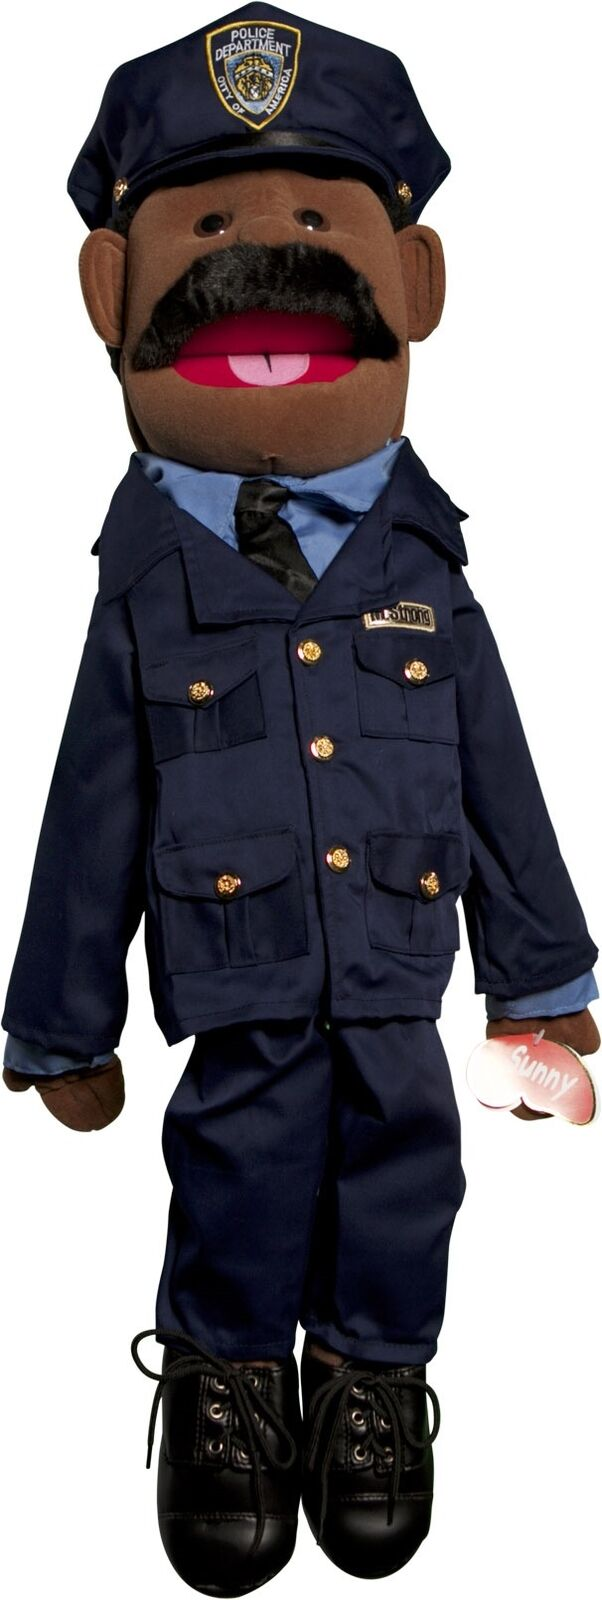 Sunny Toys GS4308B 28 In. Ethnic Dad Policeman Full Body Puppet